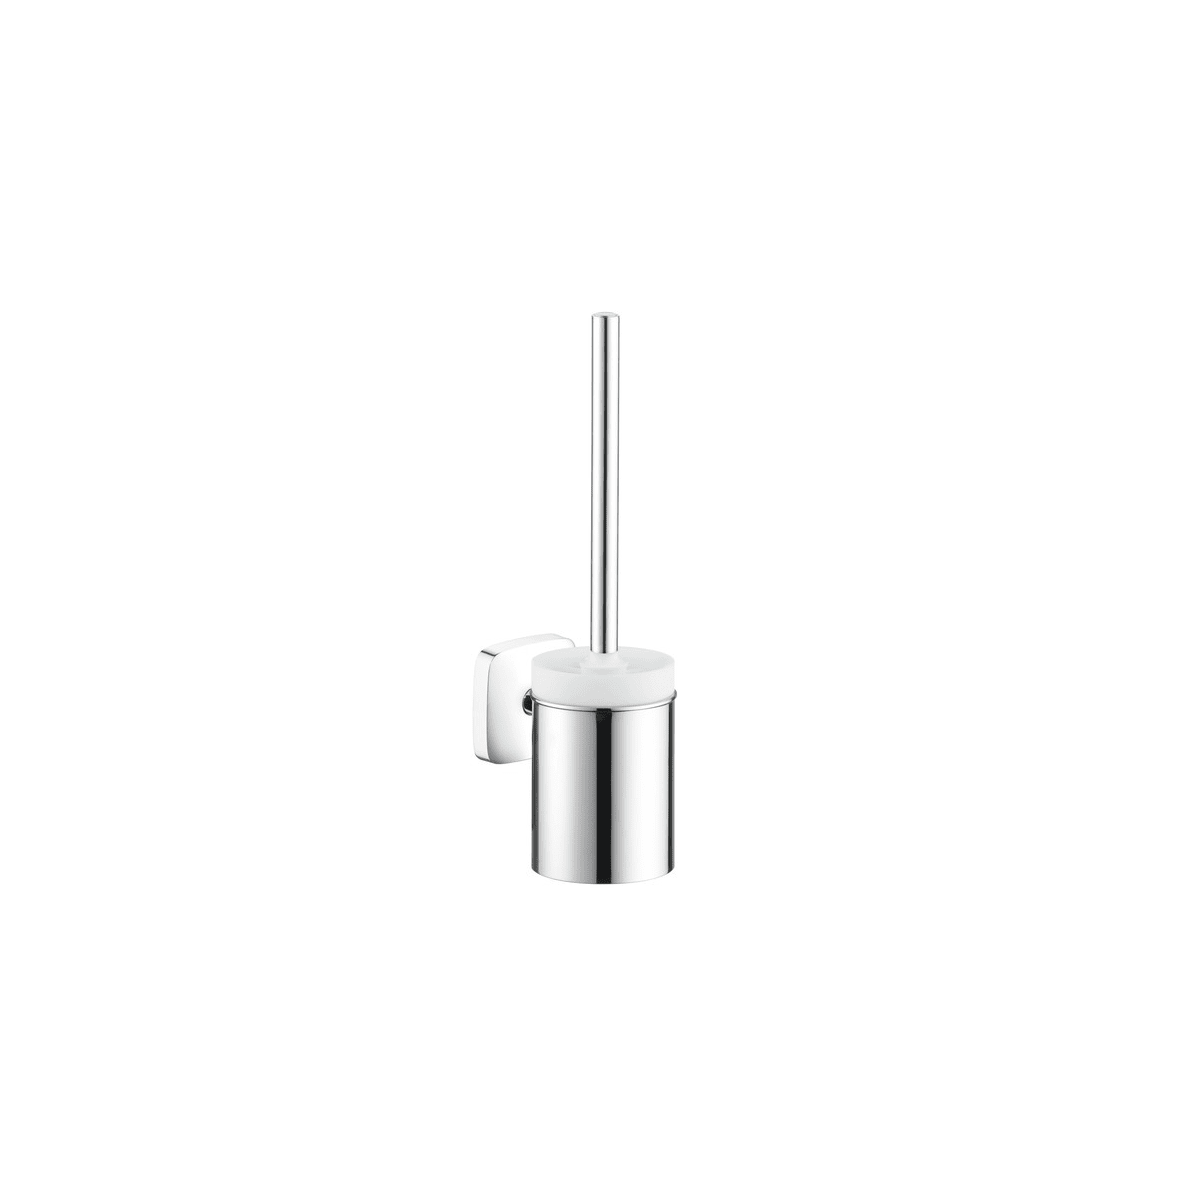 Hansgrohe 41505000 Chrome PuraVida Wall Mounted Toilet Brush ...